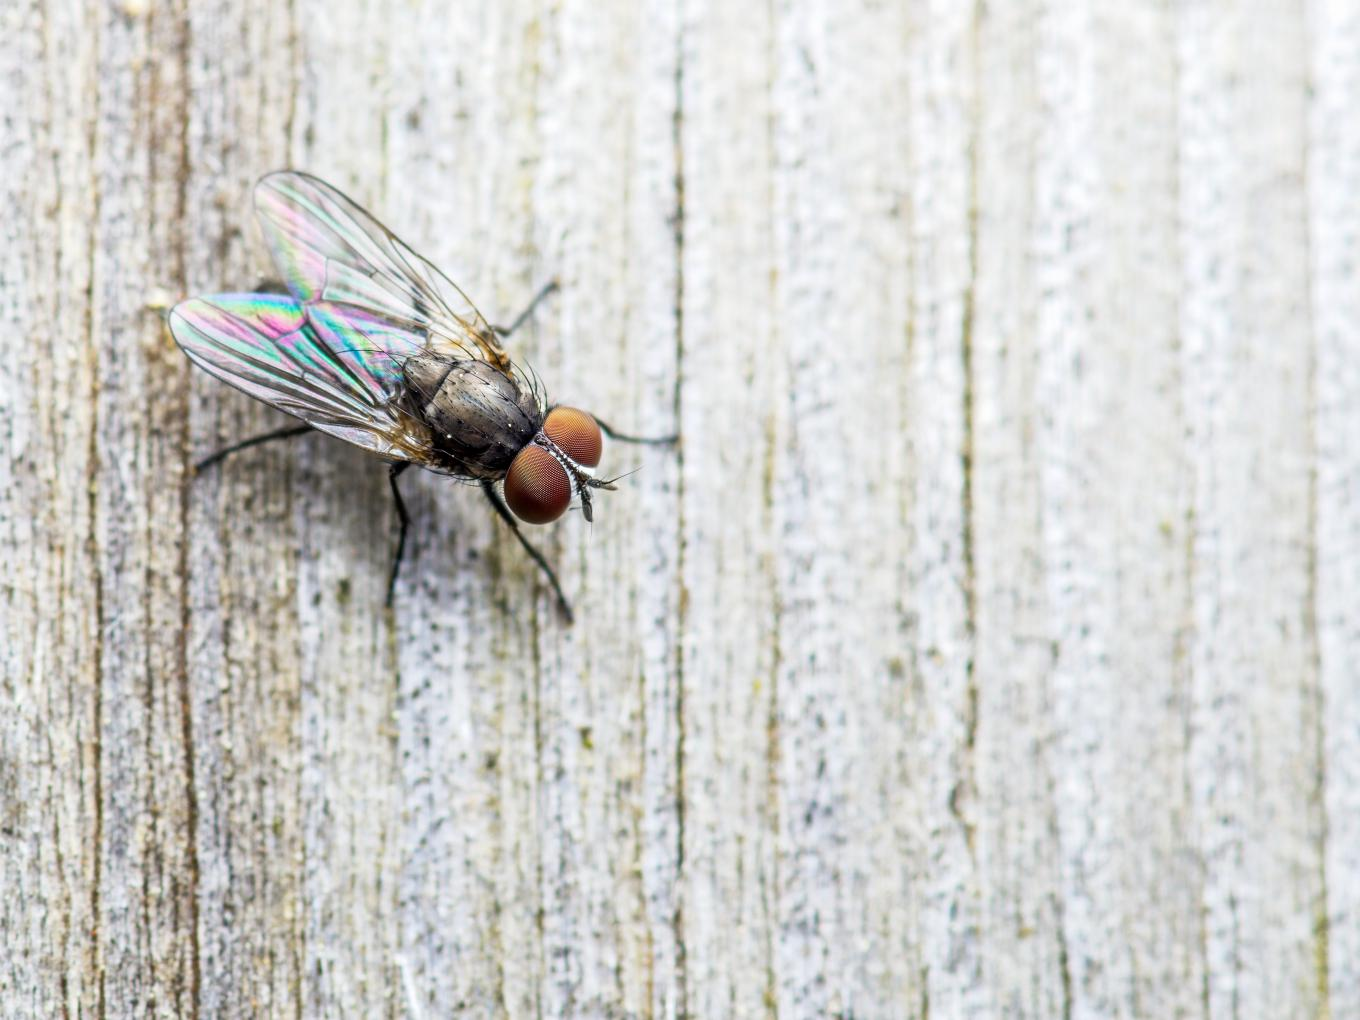 Be a Fly on the Wall:  Observe Your Own Habits Without Judgement